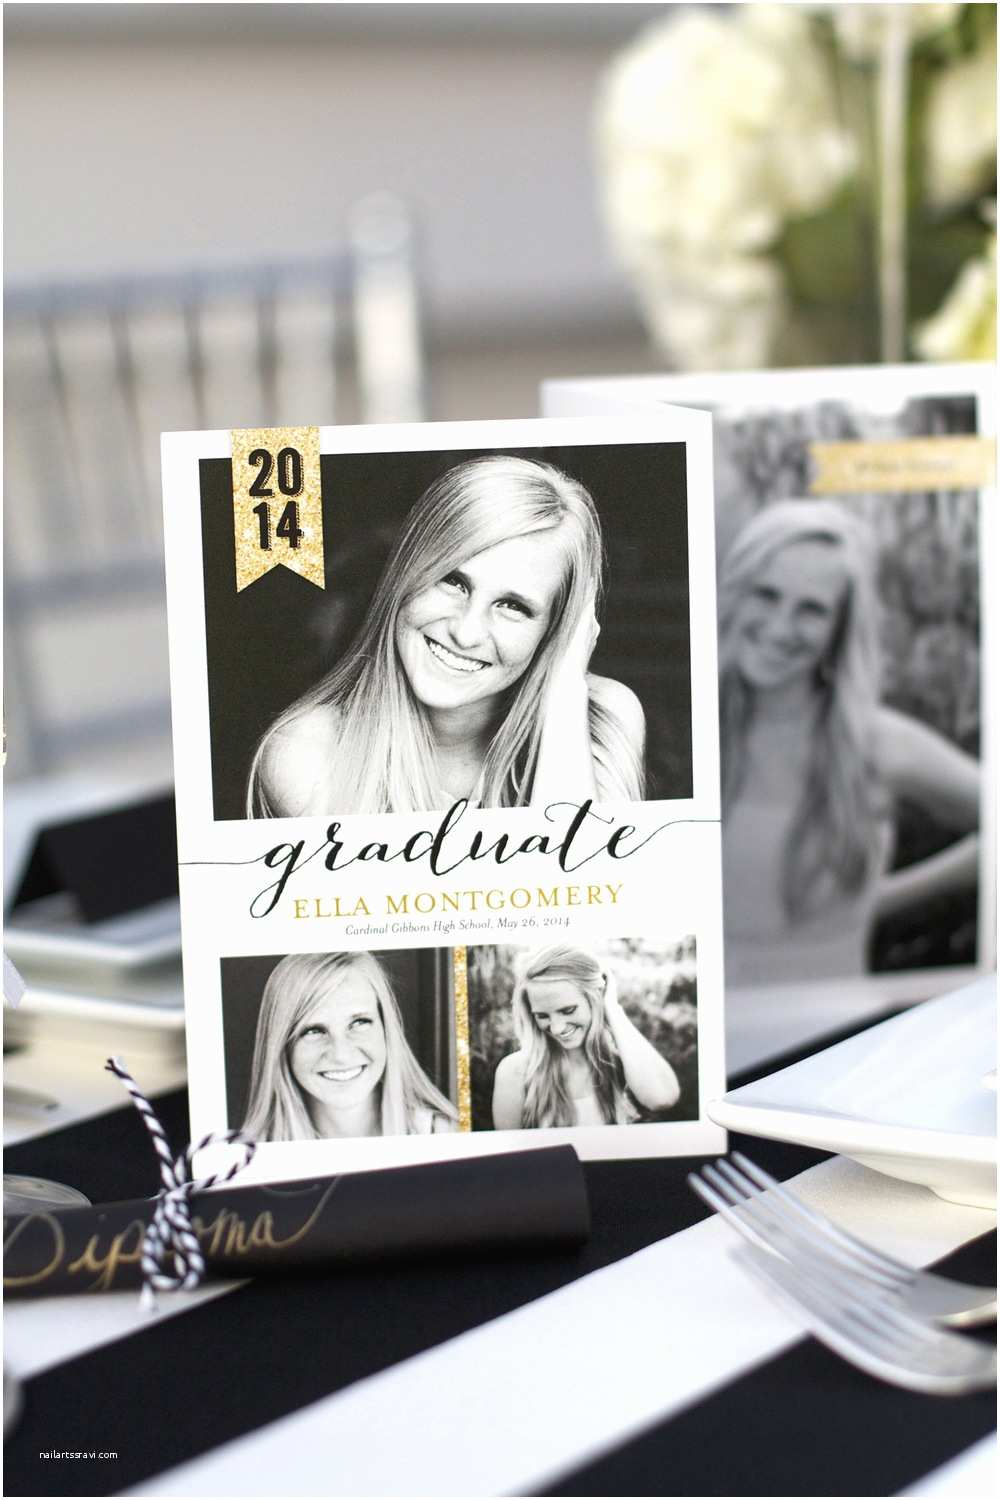 Graduation Party Invitations Ideas Sparkling Senior Graduation Party with Shutterfly — Kristi